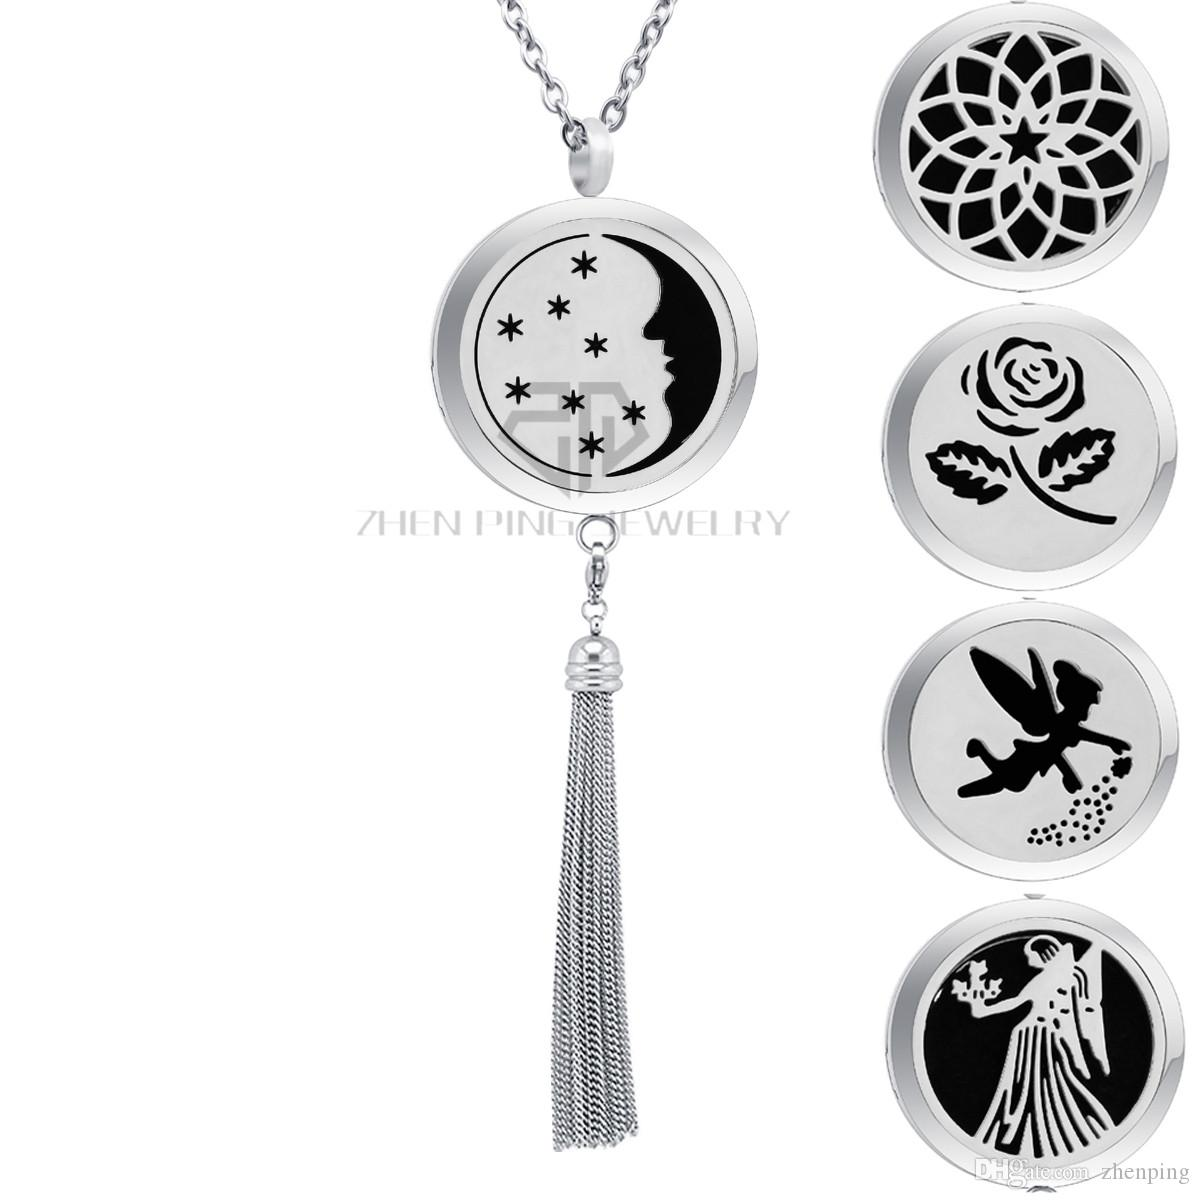 Aromatherapy Moon and Star Desgin Stainless Steel Fringe Dangle Perfume Locket Pendant Necklace Magnetic Tassels Diffuser Locket